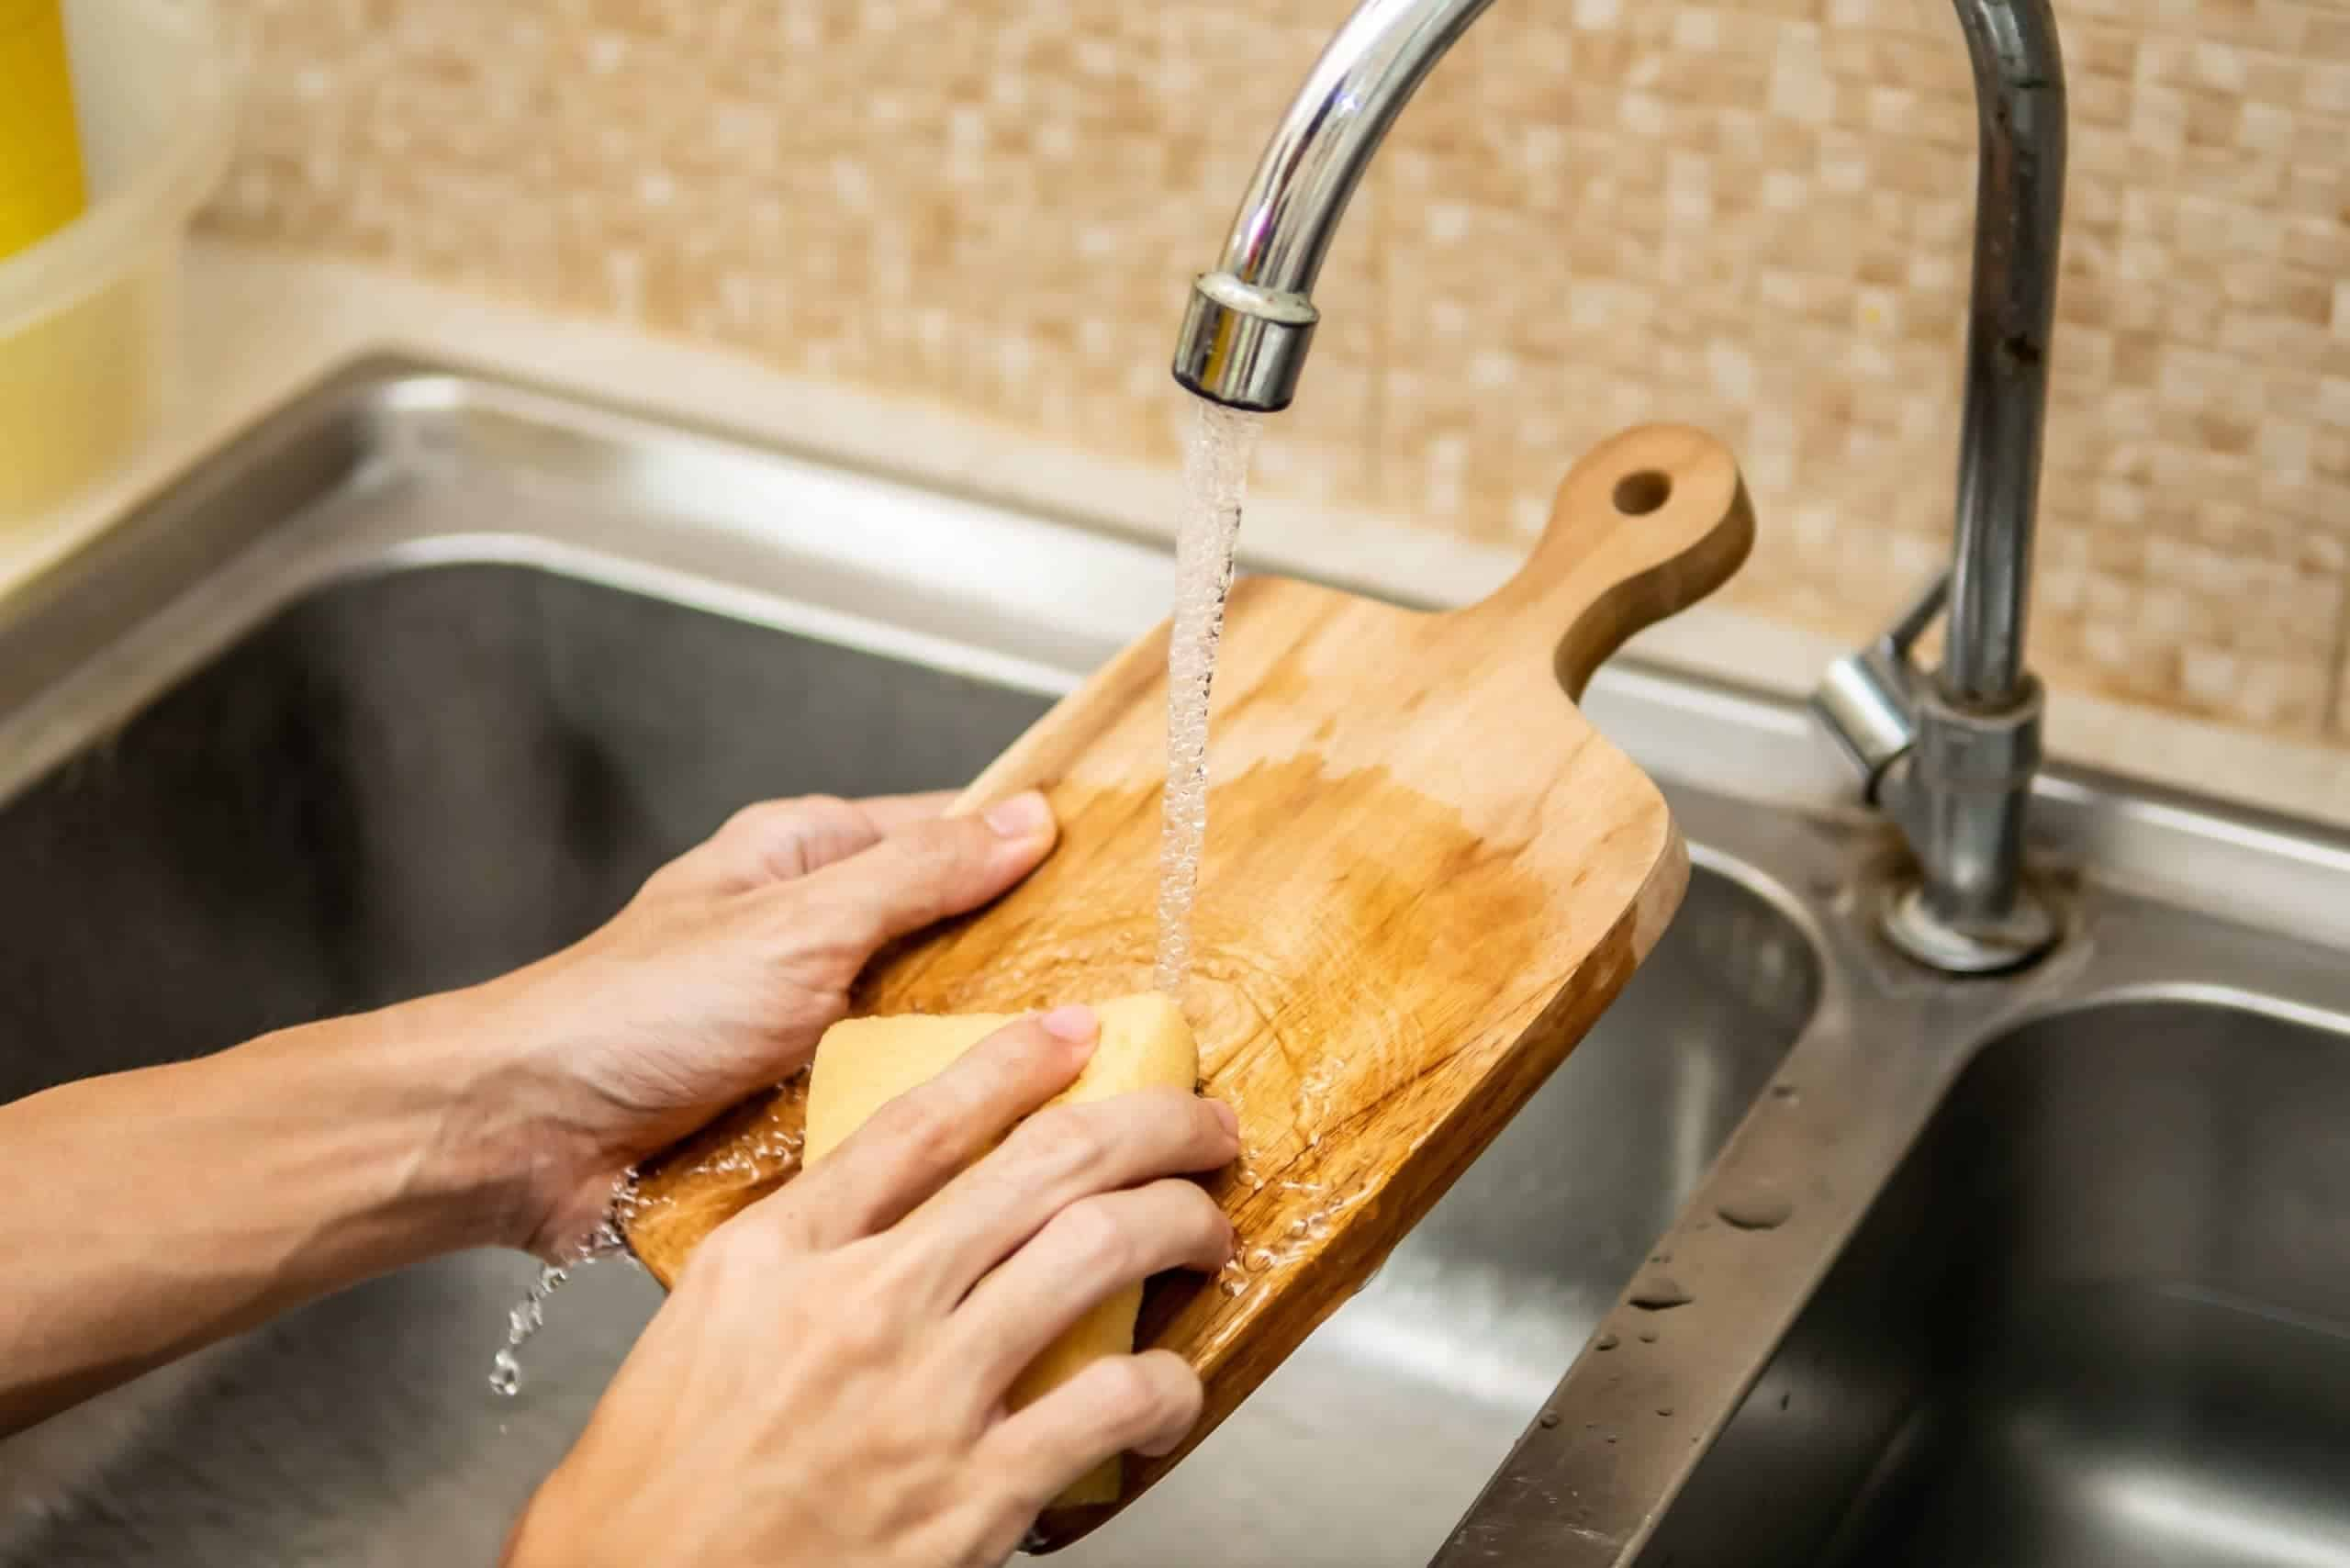 How to Clean Cutting Board for Maximum Food Safety